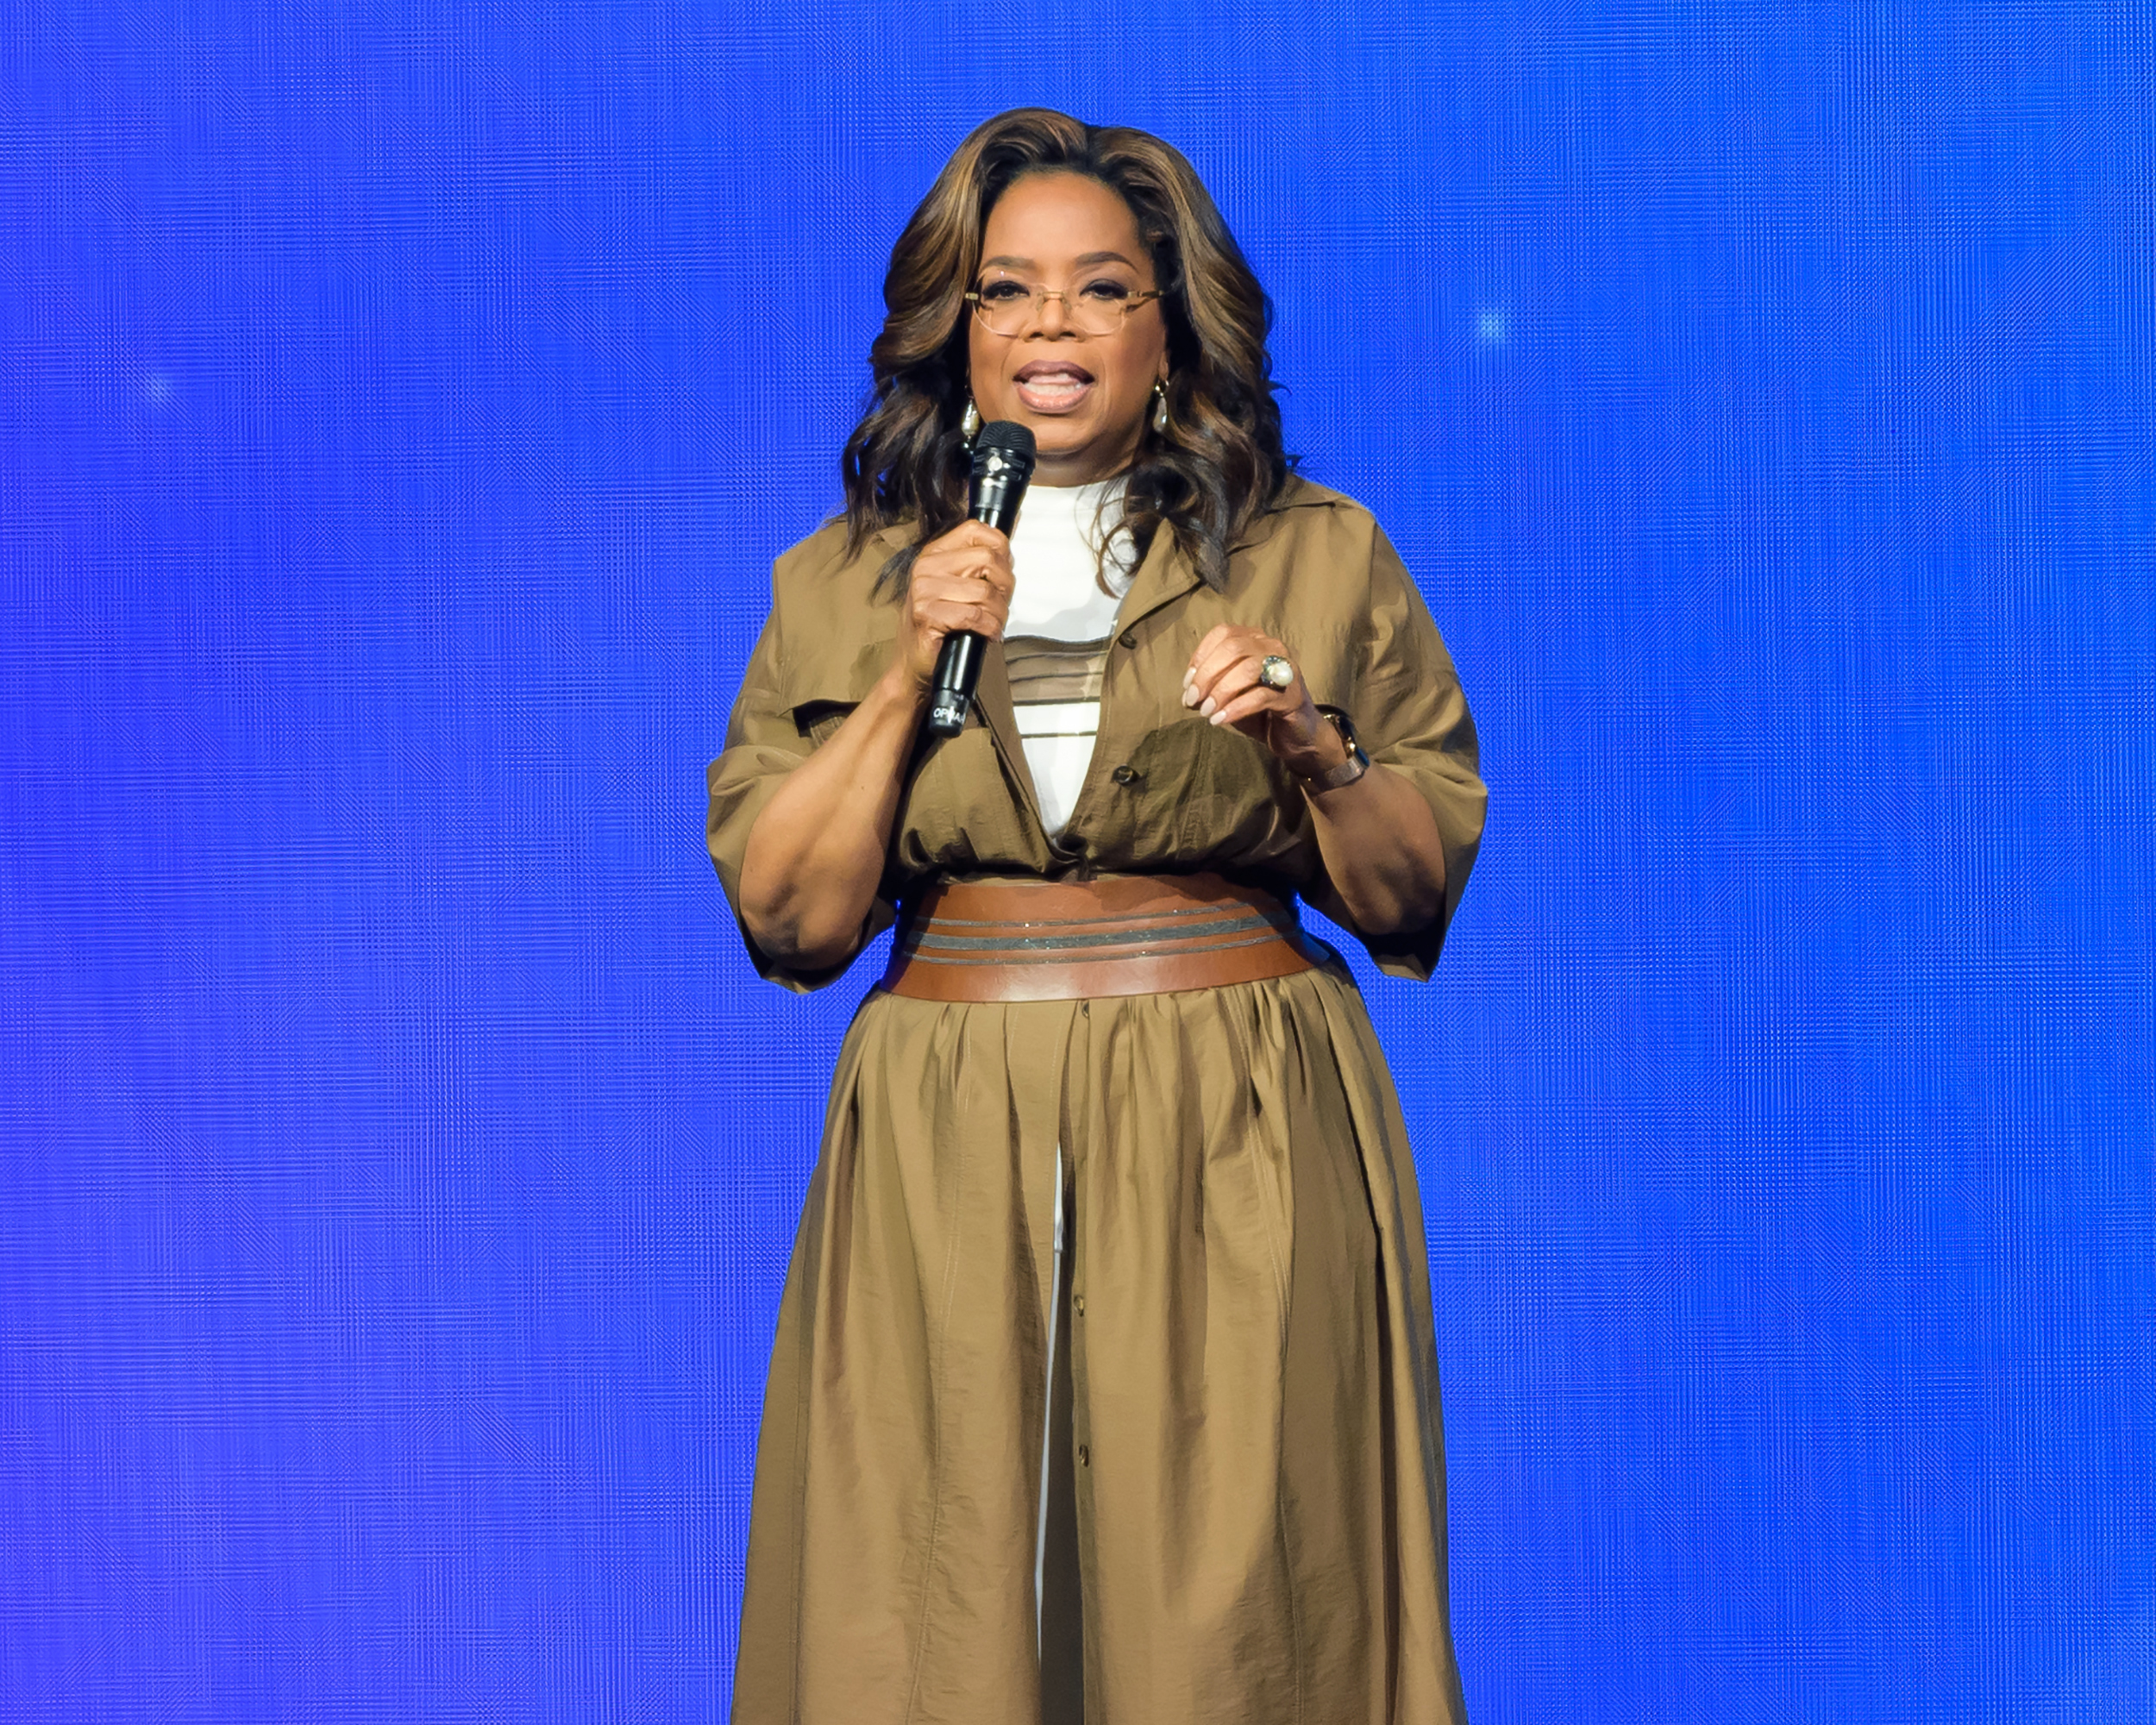 Oprah Winfrey talks about her decision to step down from producing the documentary featuring Russell Simmons' accusers. She says she was not pressured.